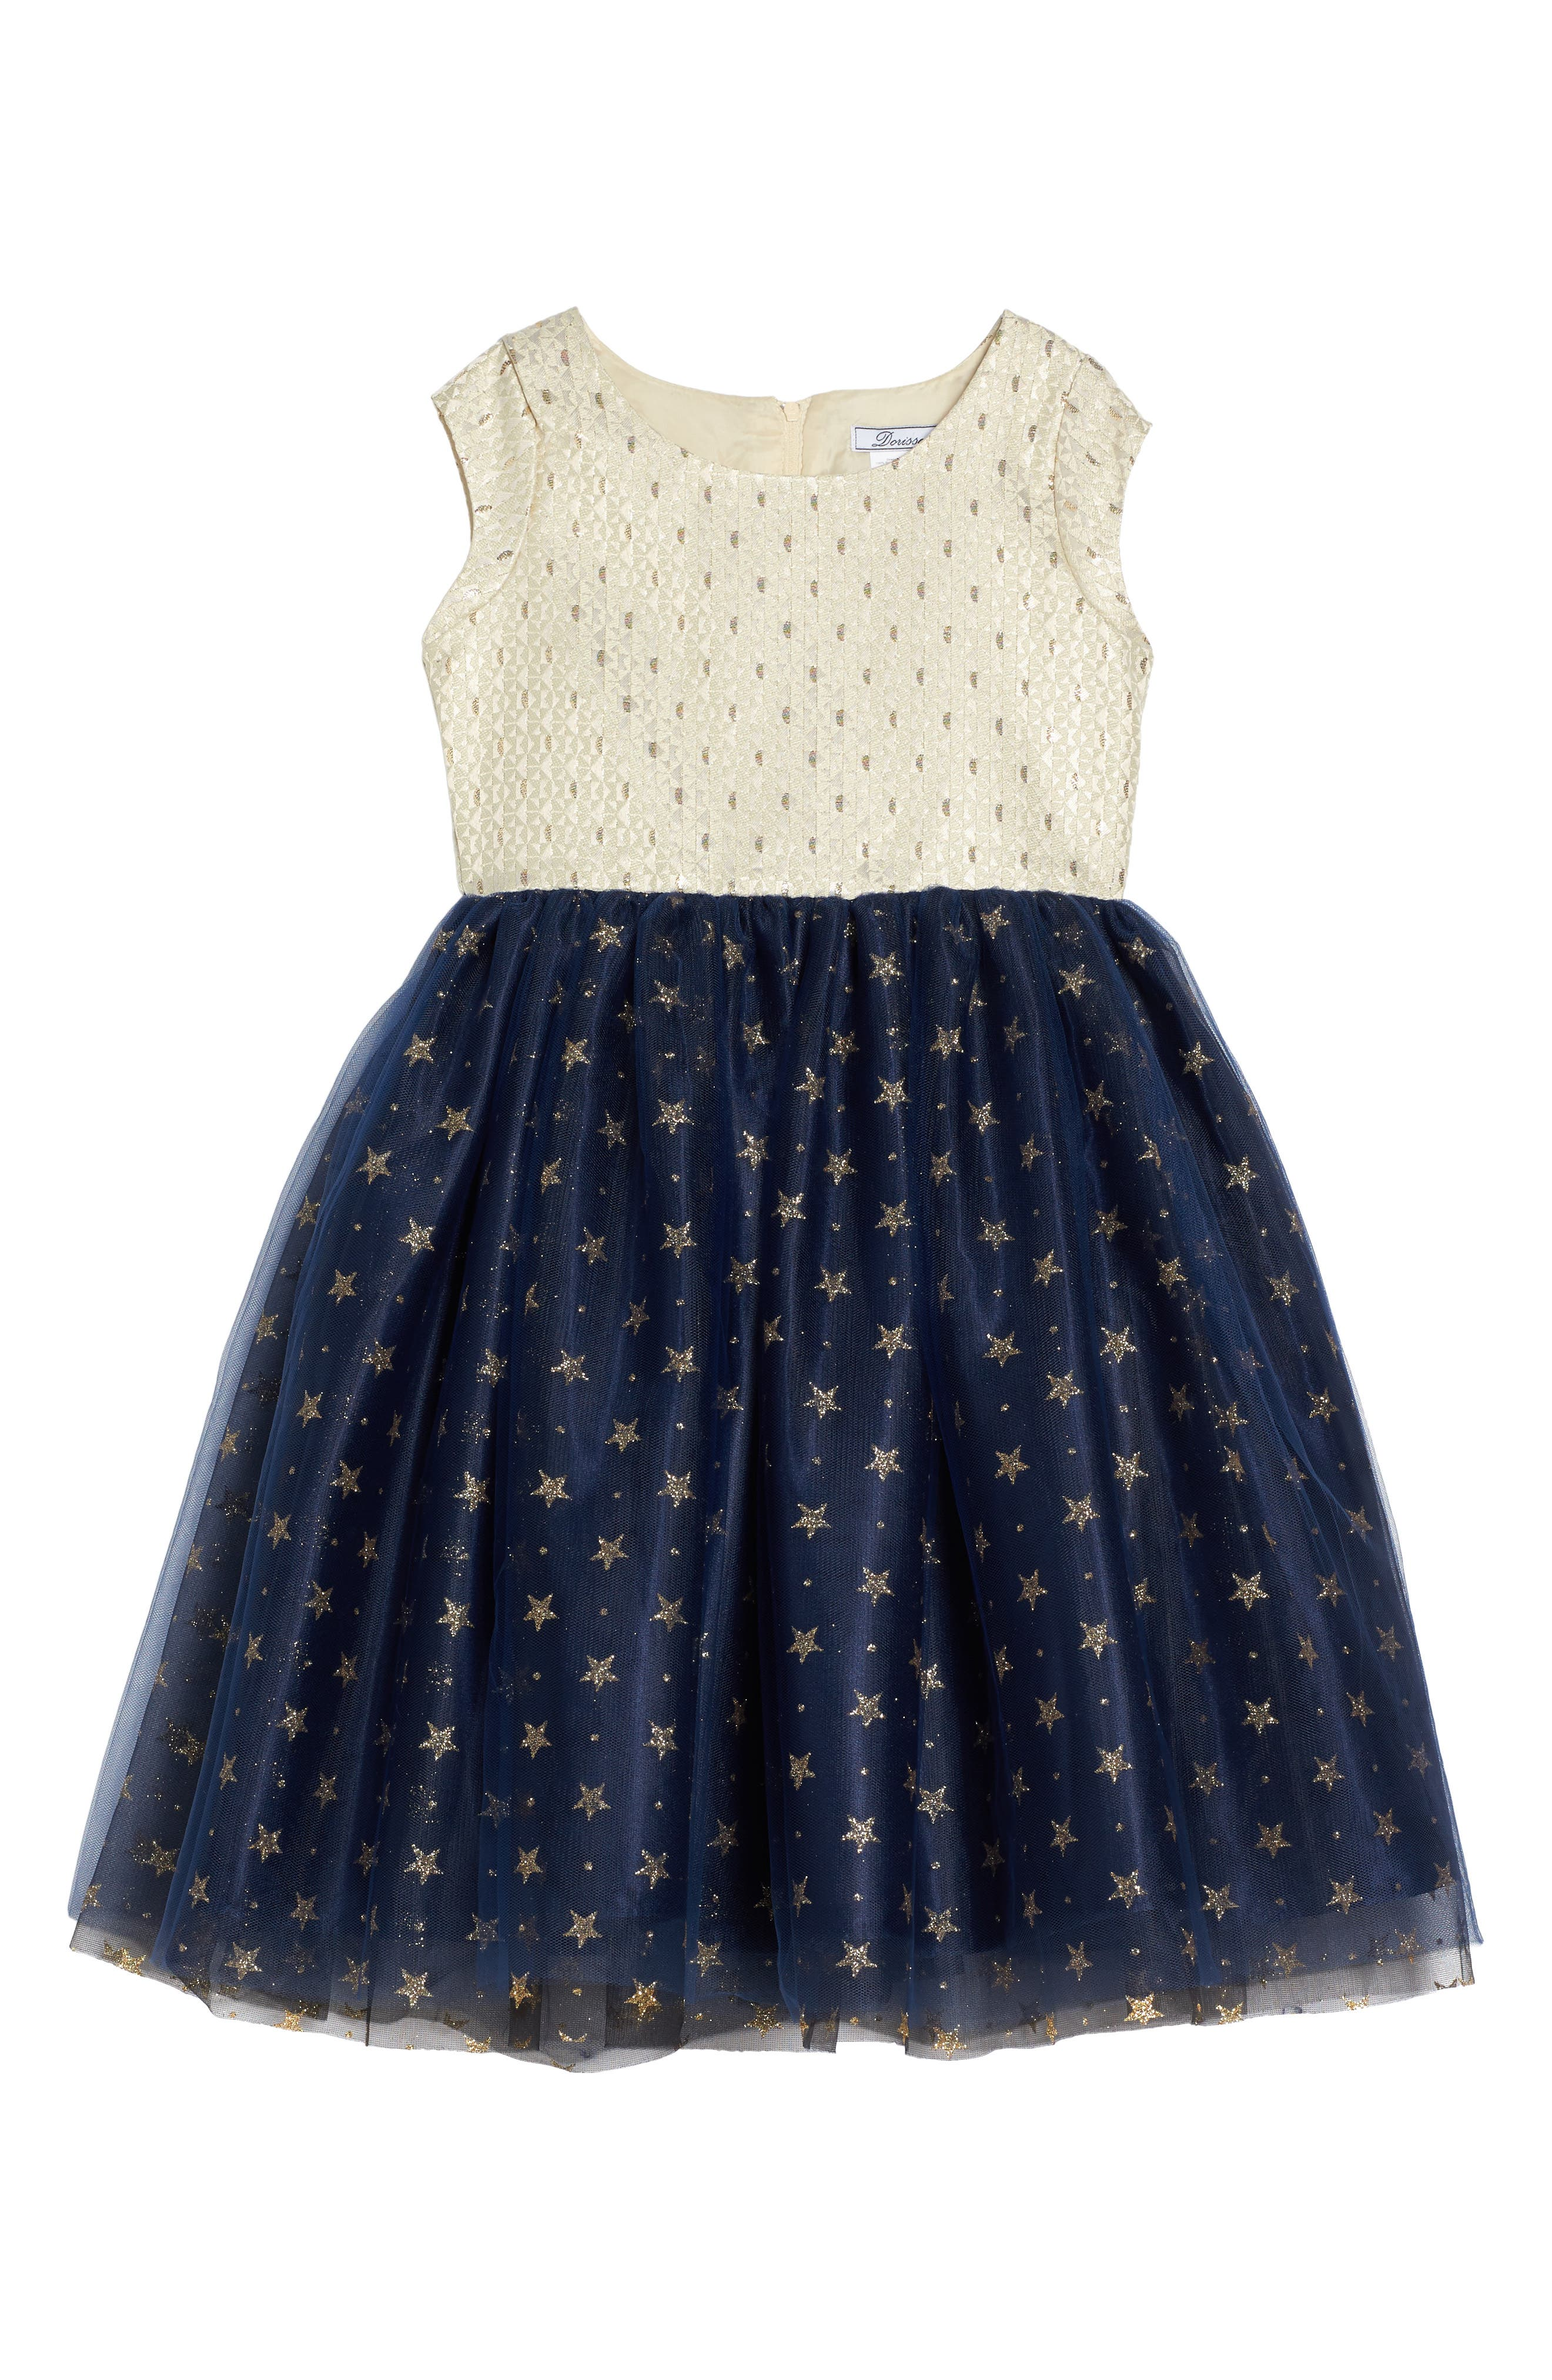 Dorissa Kerry Fit & Flare Dress (Toddler Girls, Little Girls & Big Girls)